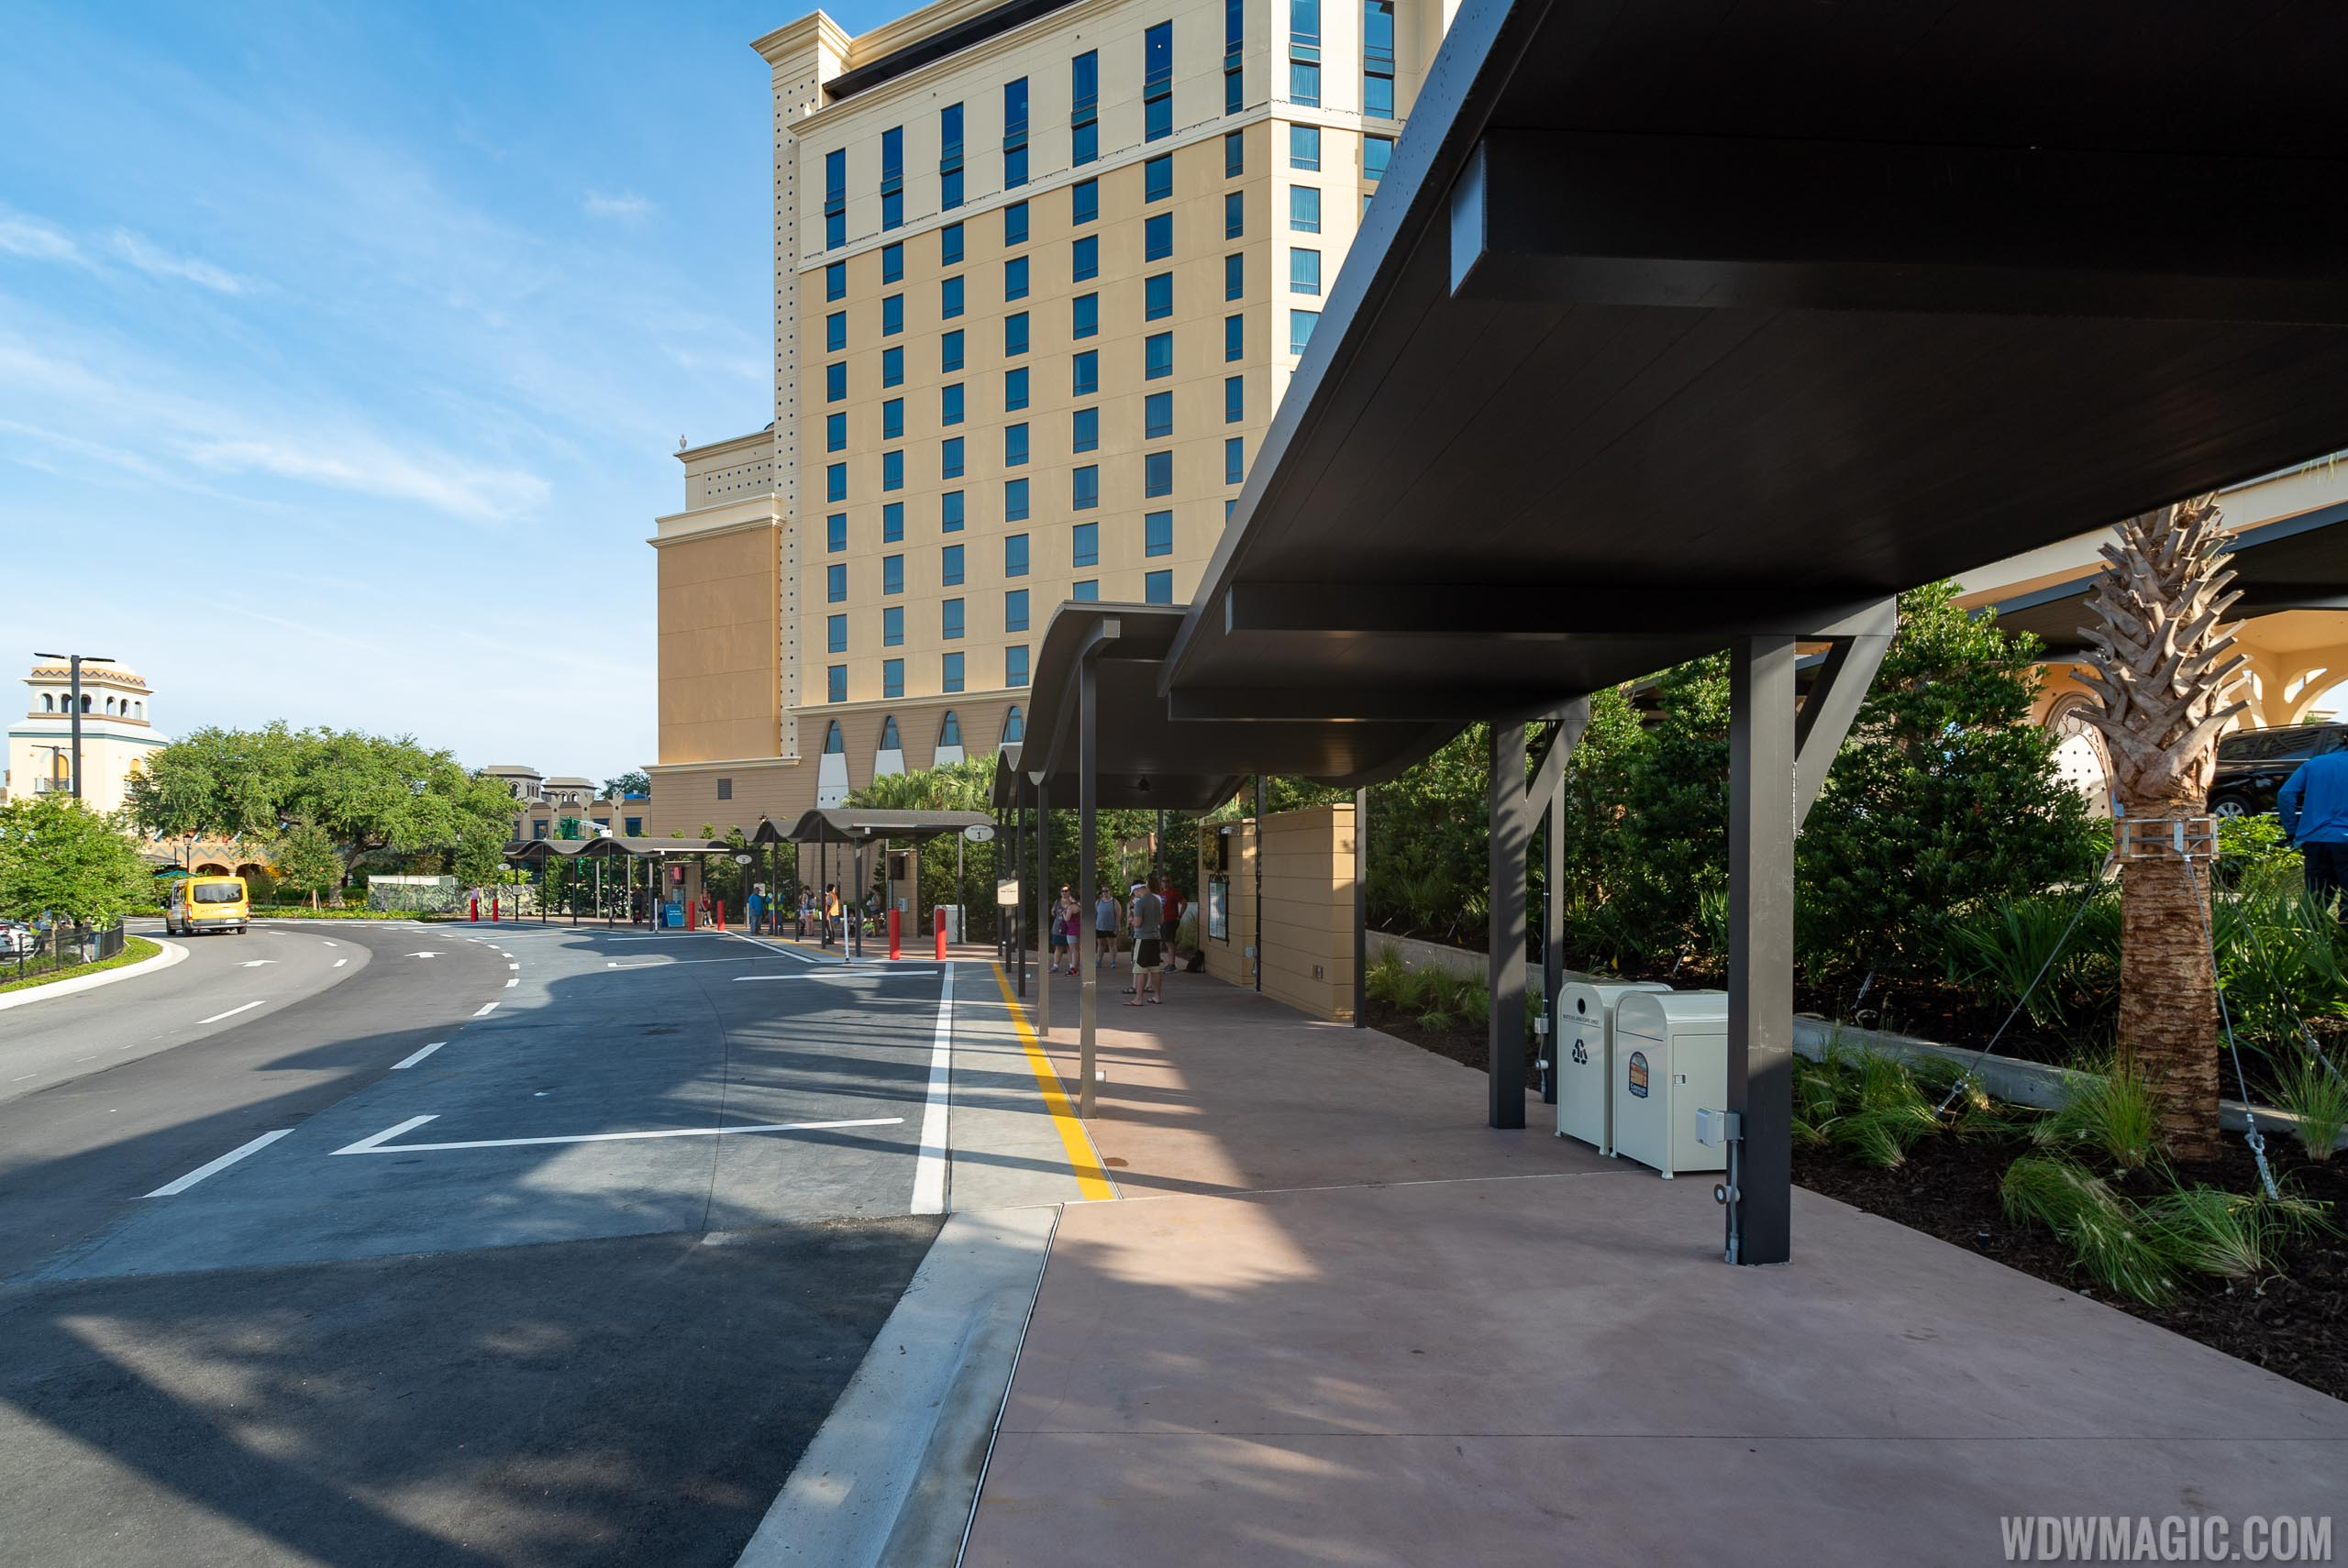 New Coronado Springs check-in and bus stops at Gran Destino